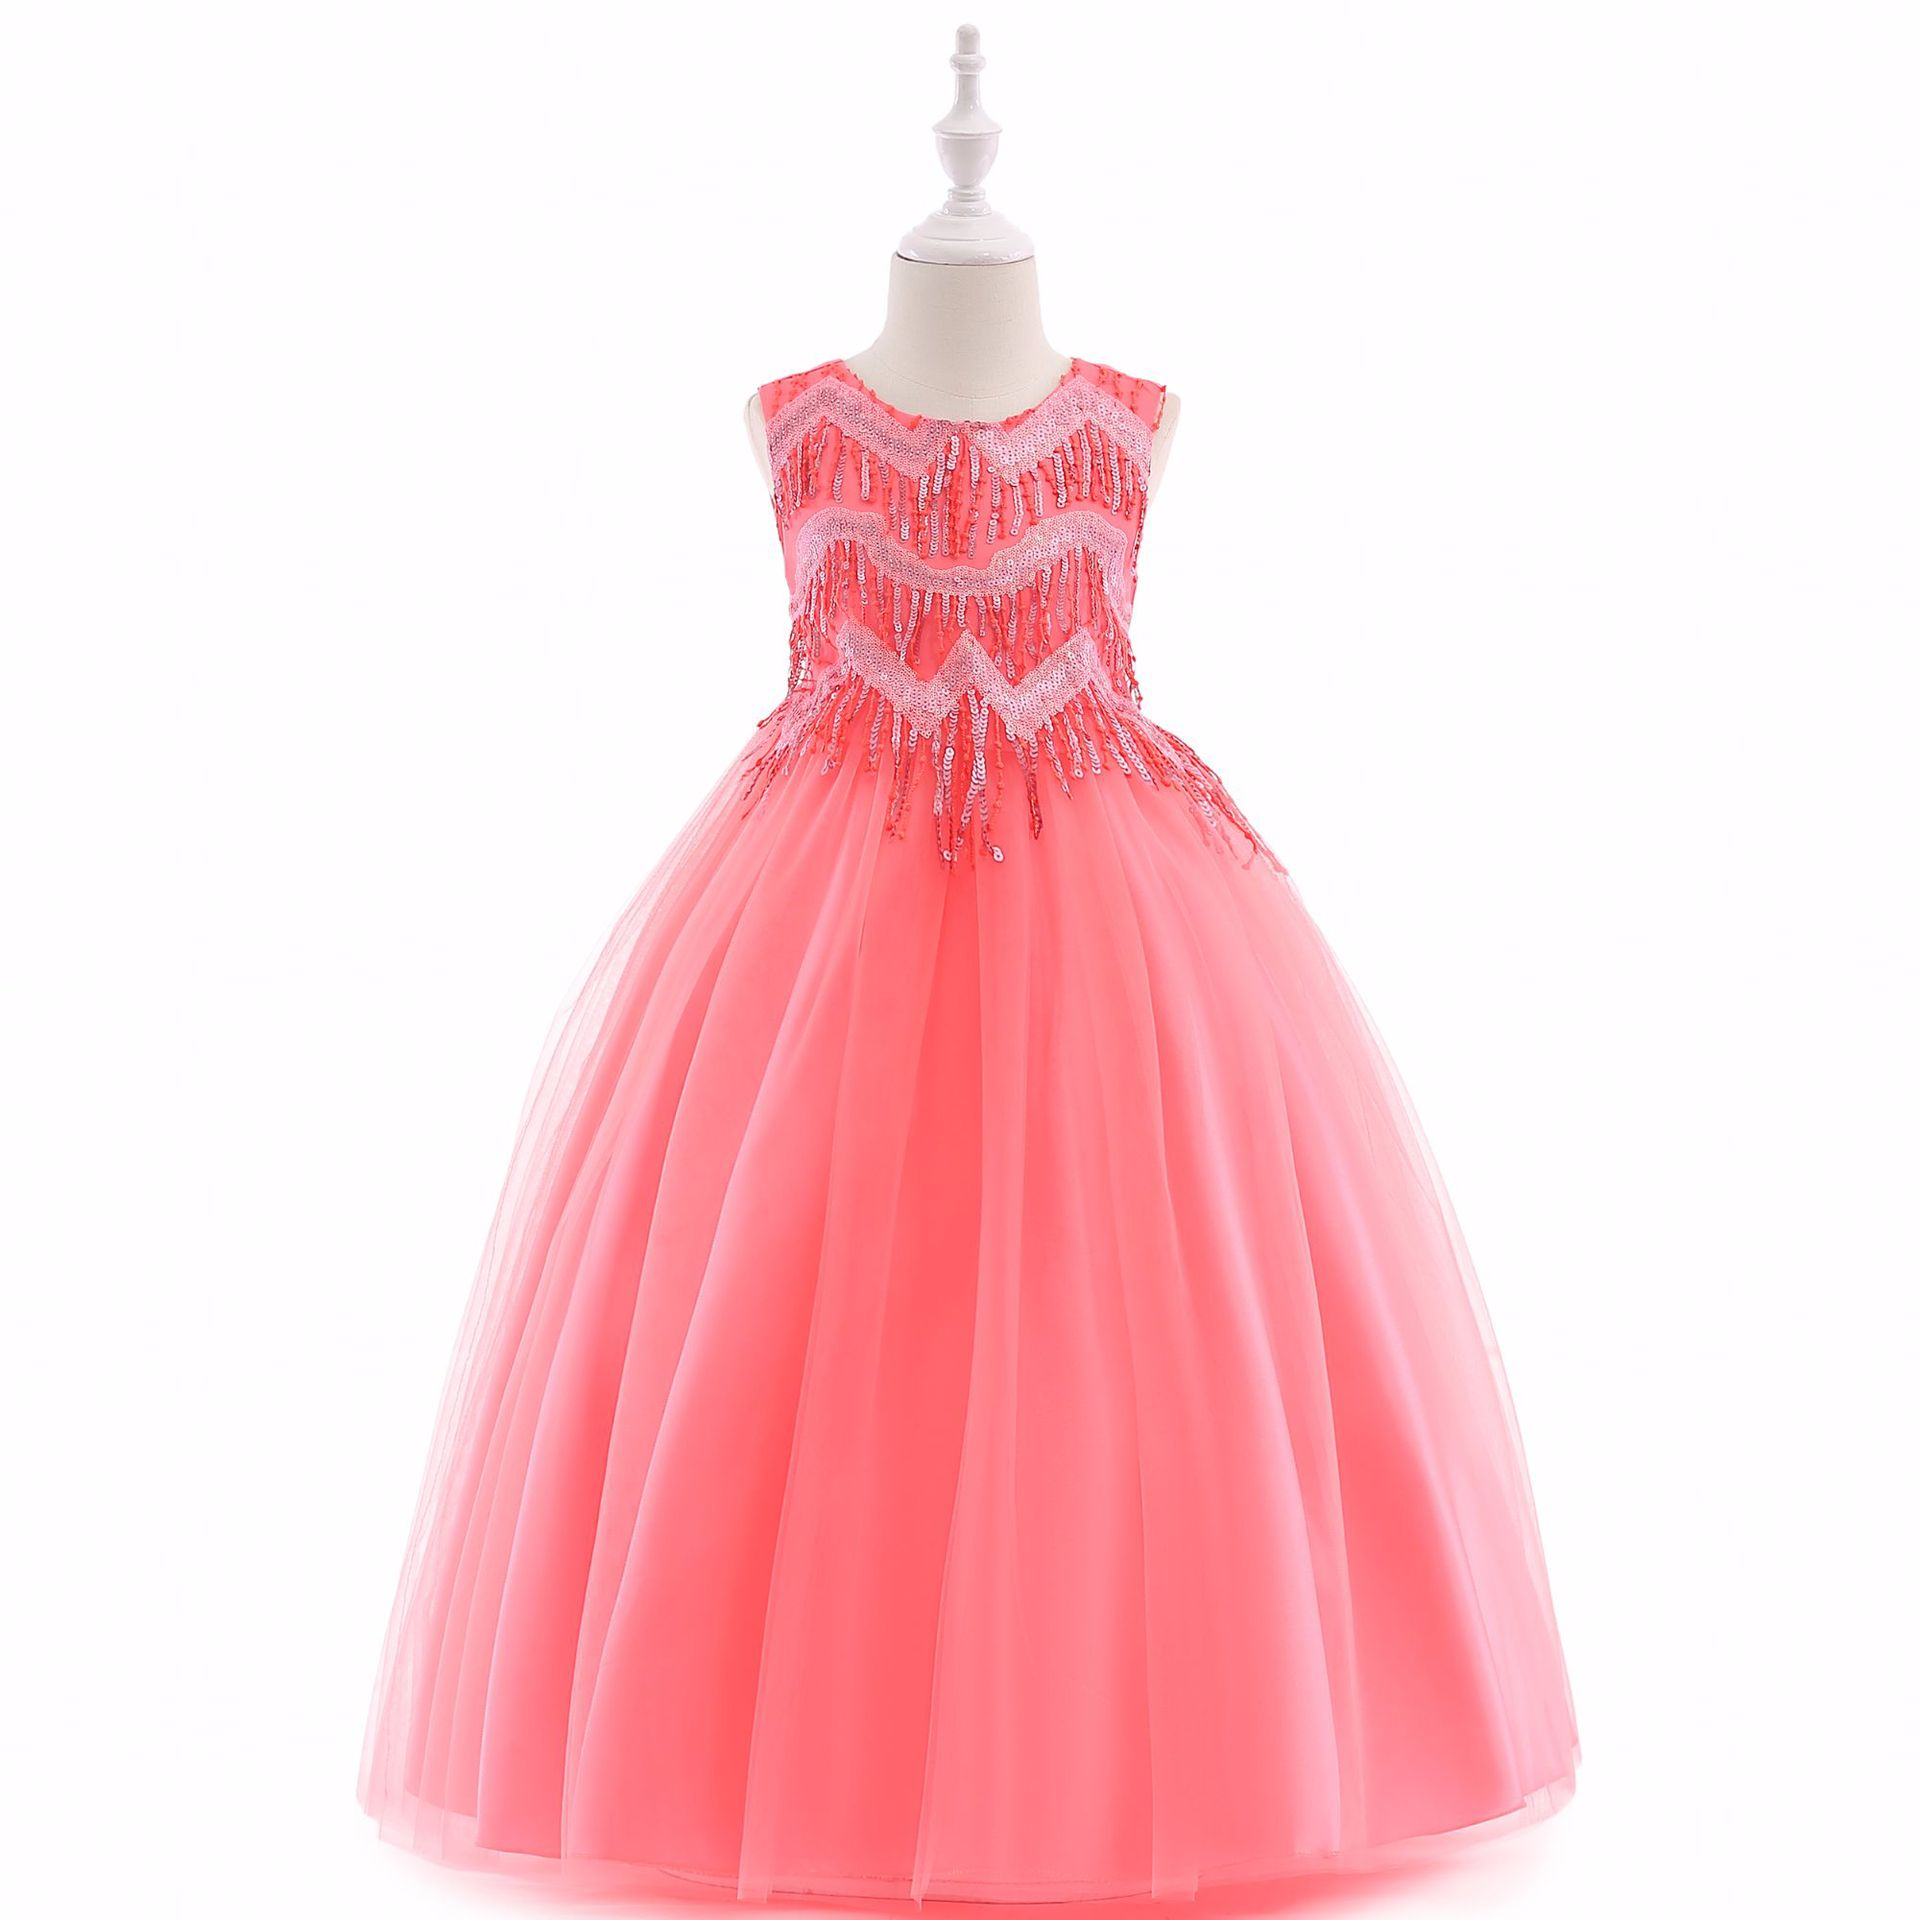 eda540319433a SISTERS Hot style in Europe and the amazon princess dress Girls dress  sequins lace dress cuhk TongPengPeng -in Dresses from Mother & Kids on  Aliexpress.com ...